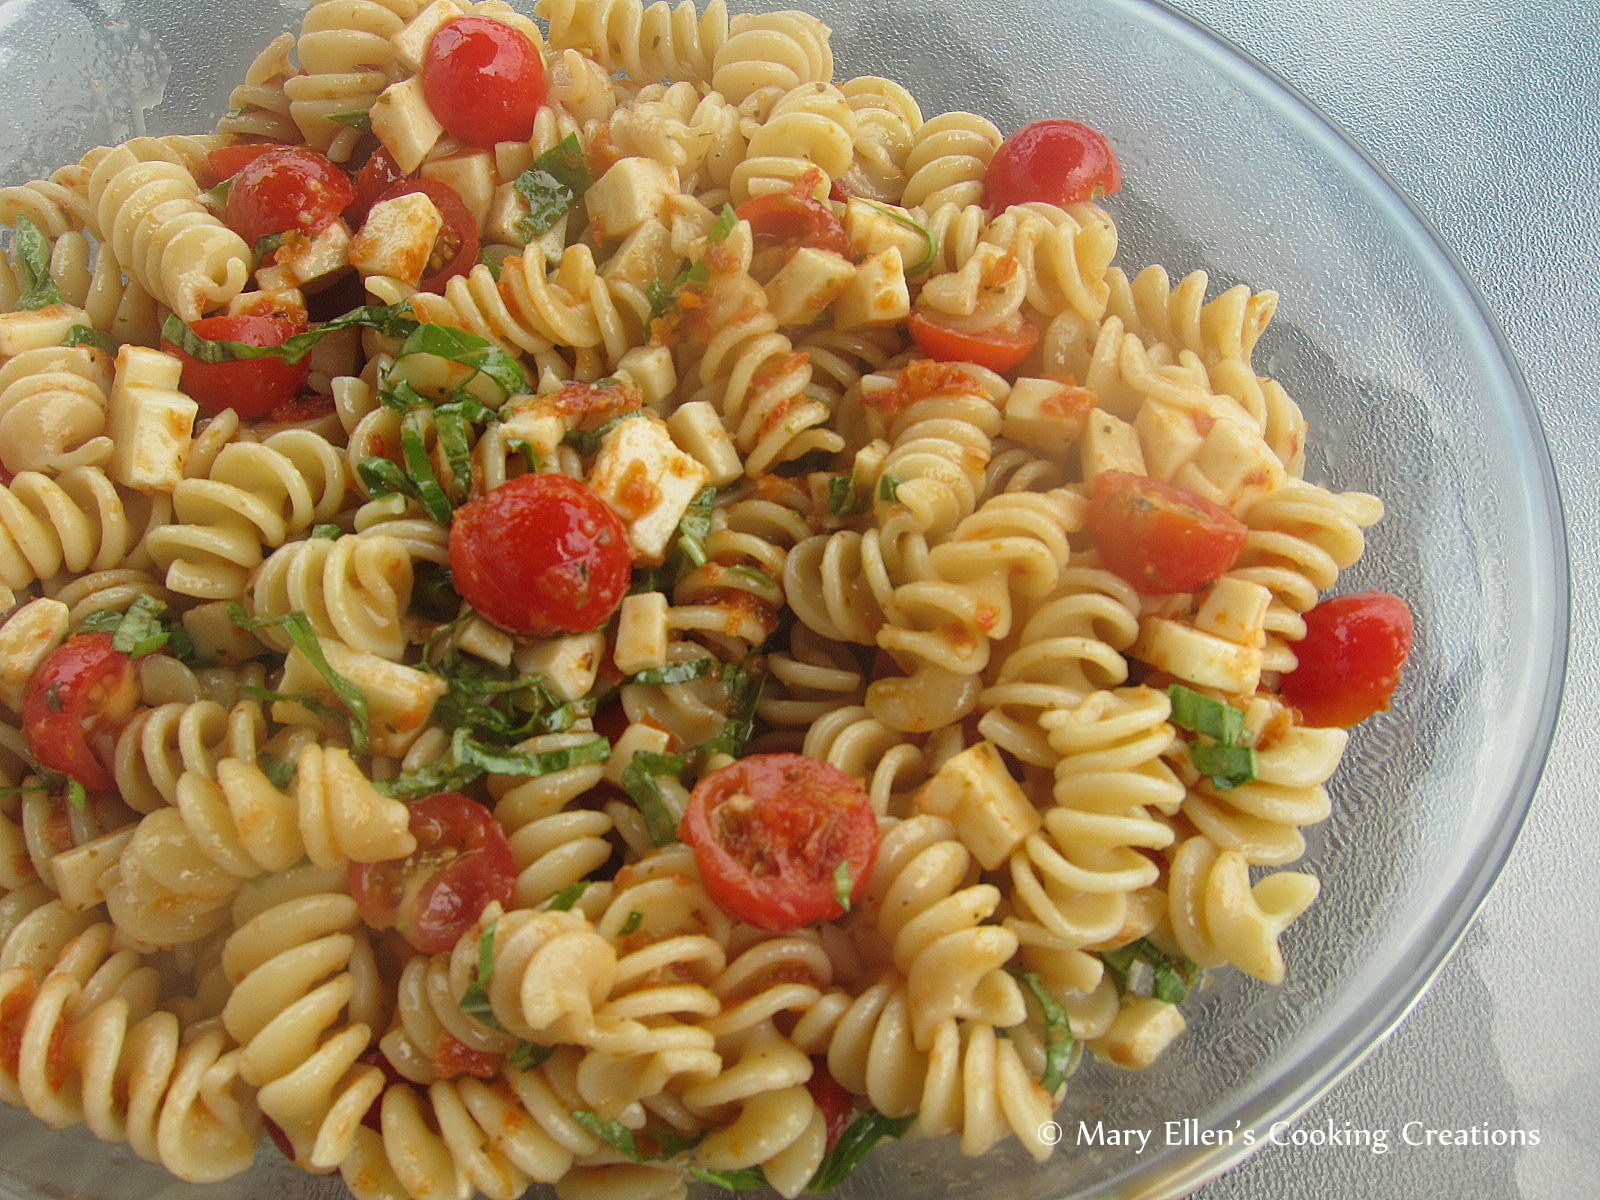 mary ellen 39 s cooking creations pasta salad roundup